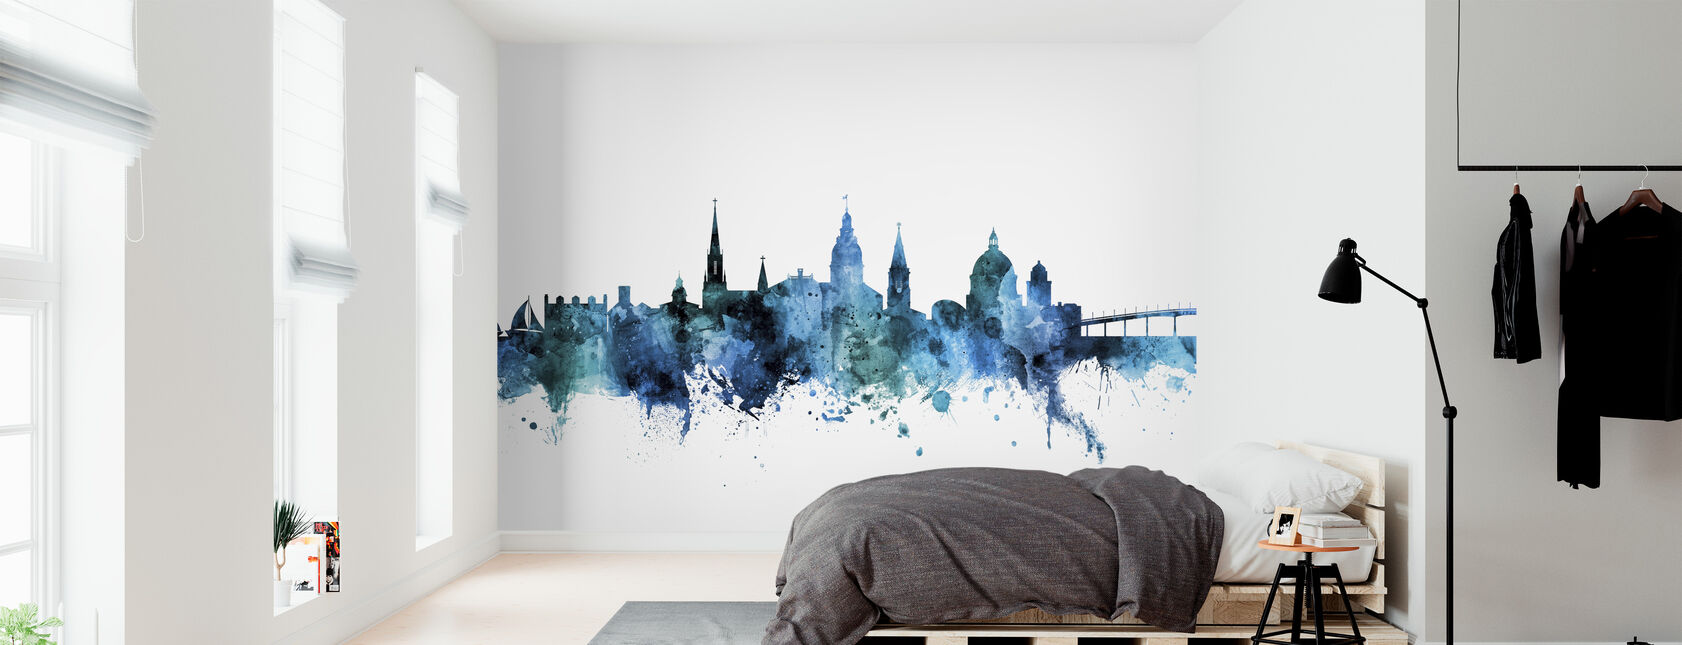 Annapolis Maryland Skyline - Behang - Slaapkamer